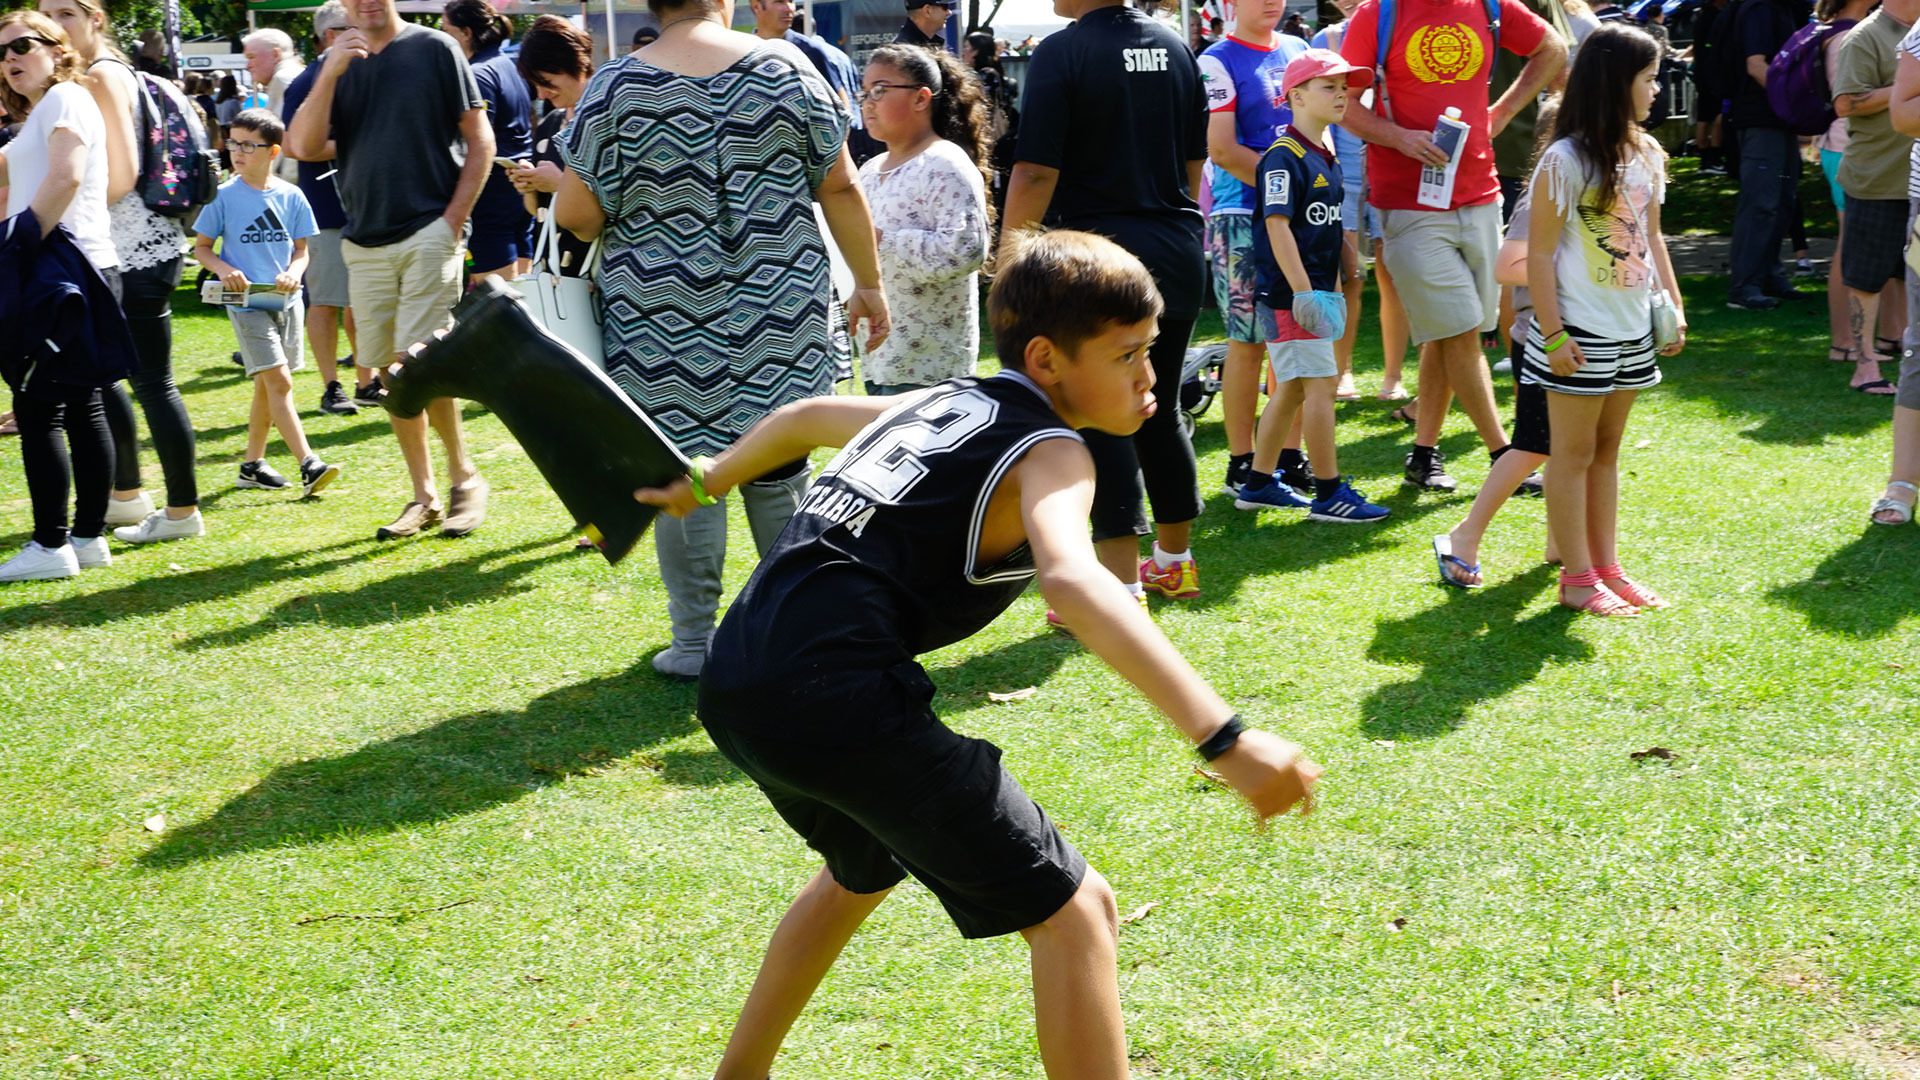 Gumboot Throw Competitor